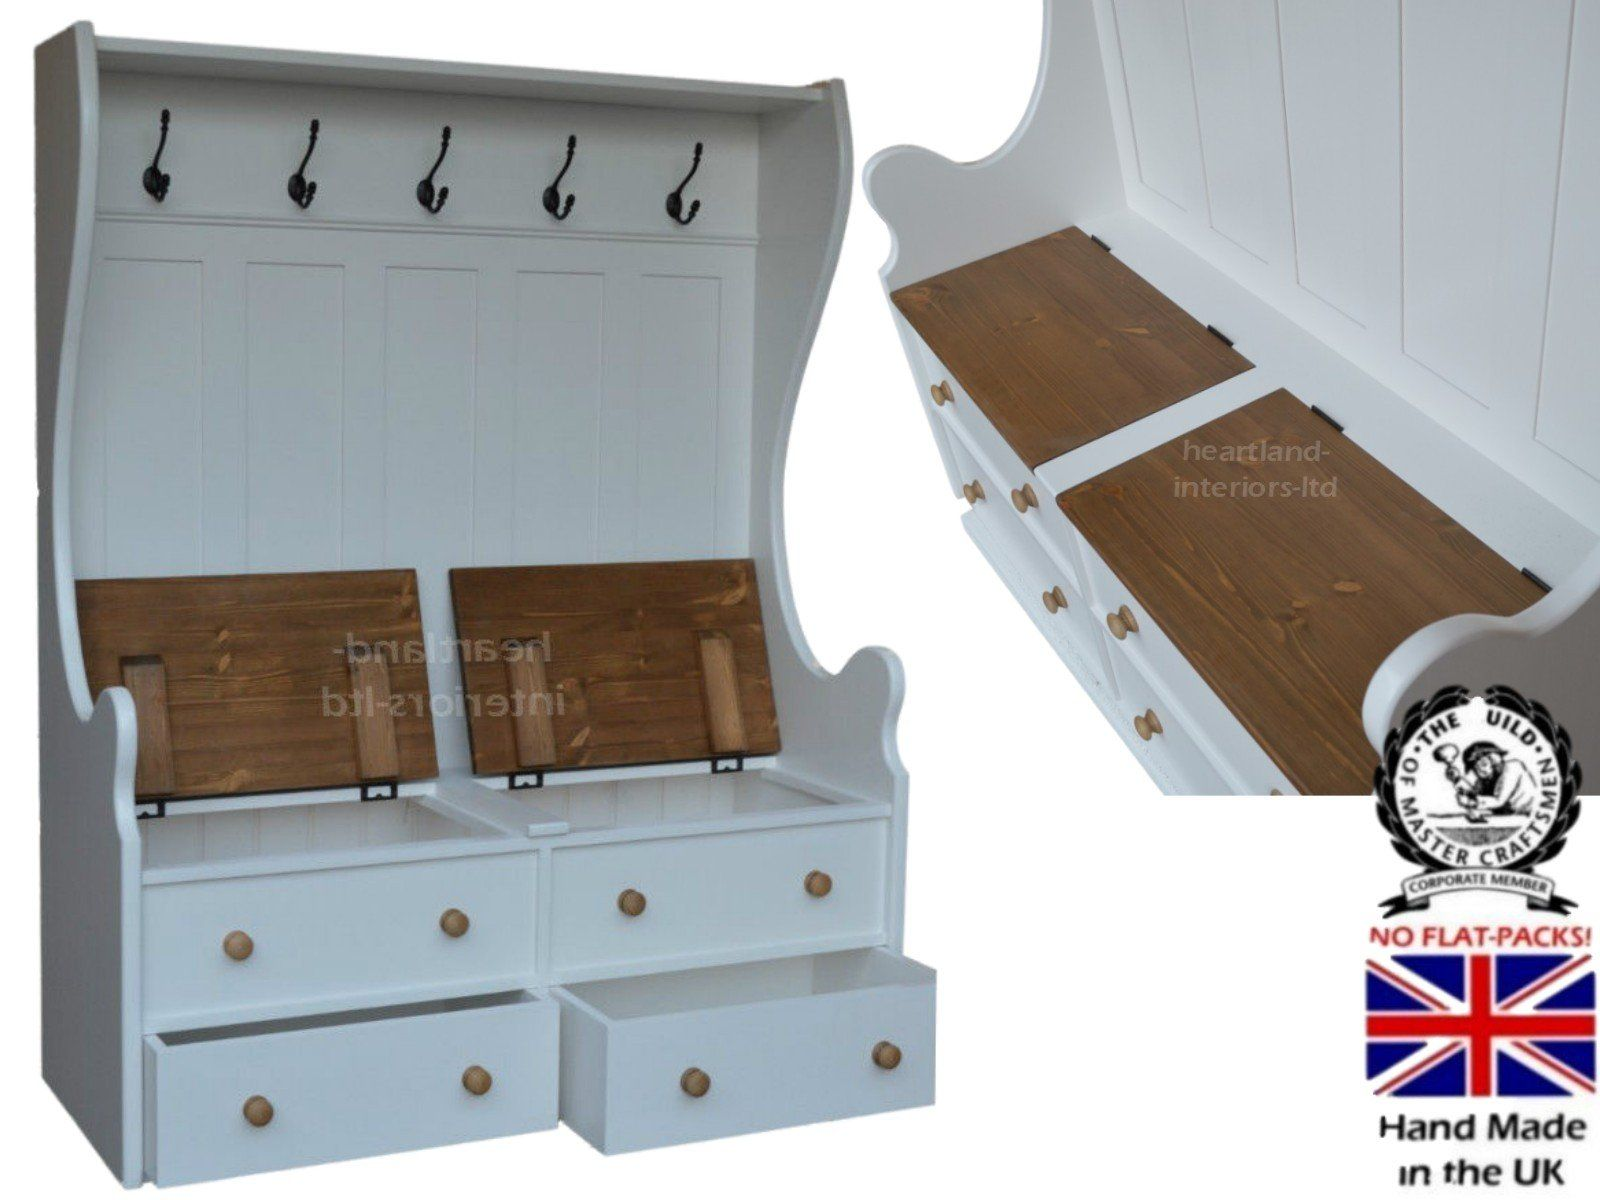 100% Solid Wood Storage Bench, 4ft X 5ft Handcrafted White Painted Monks  Bench,